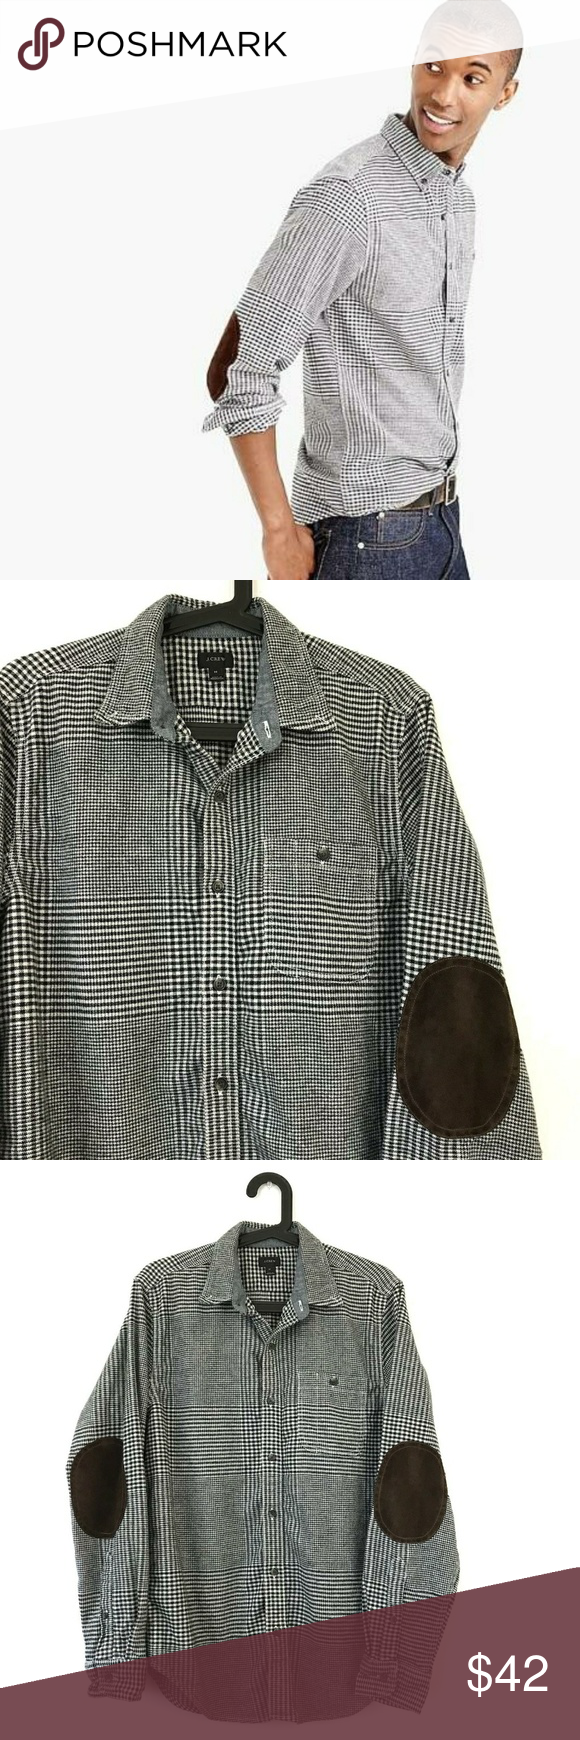 Flannel jacket with elbow patches  JCrew Elbow Patch Shirt in Glen Plaid Medium  My Posh Closet